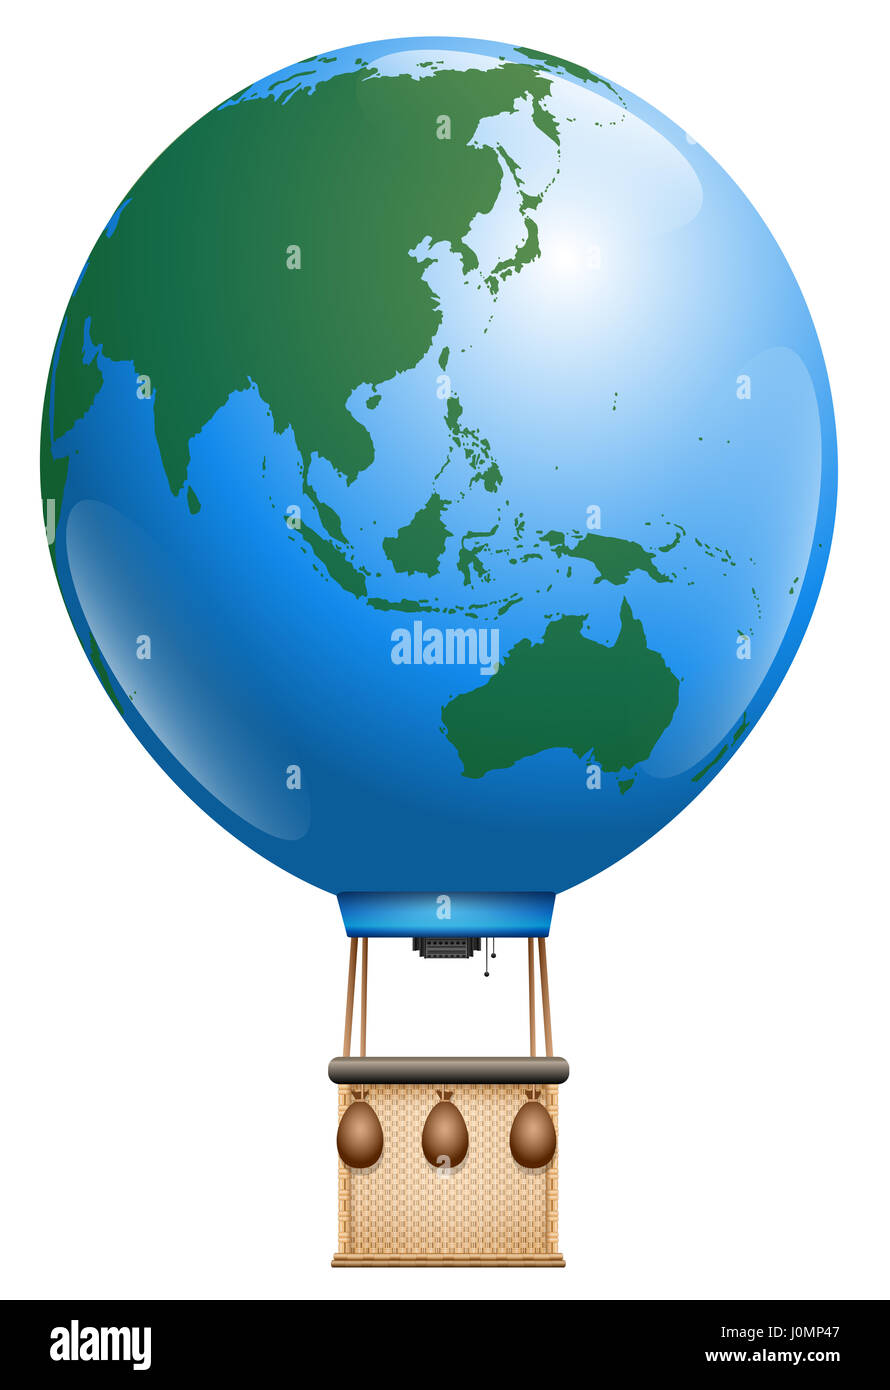 Hot air balloon planet earth asia and australia and pacific hot air balloon planet earth asia and australia and pacific ocean symbol for round the world cruise or other global flying tourism issues biocorpaavc Gallery